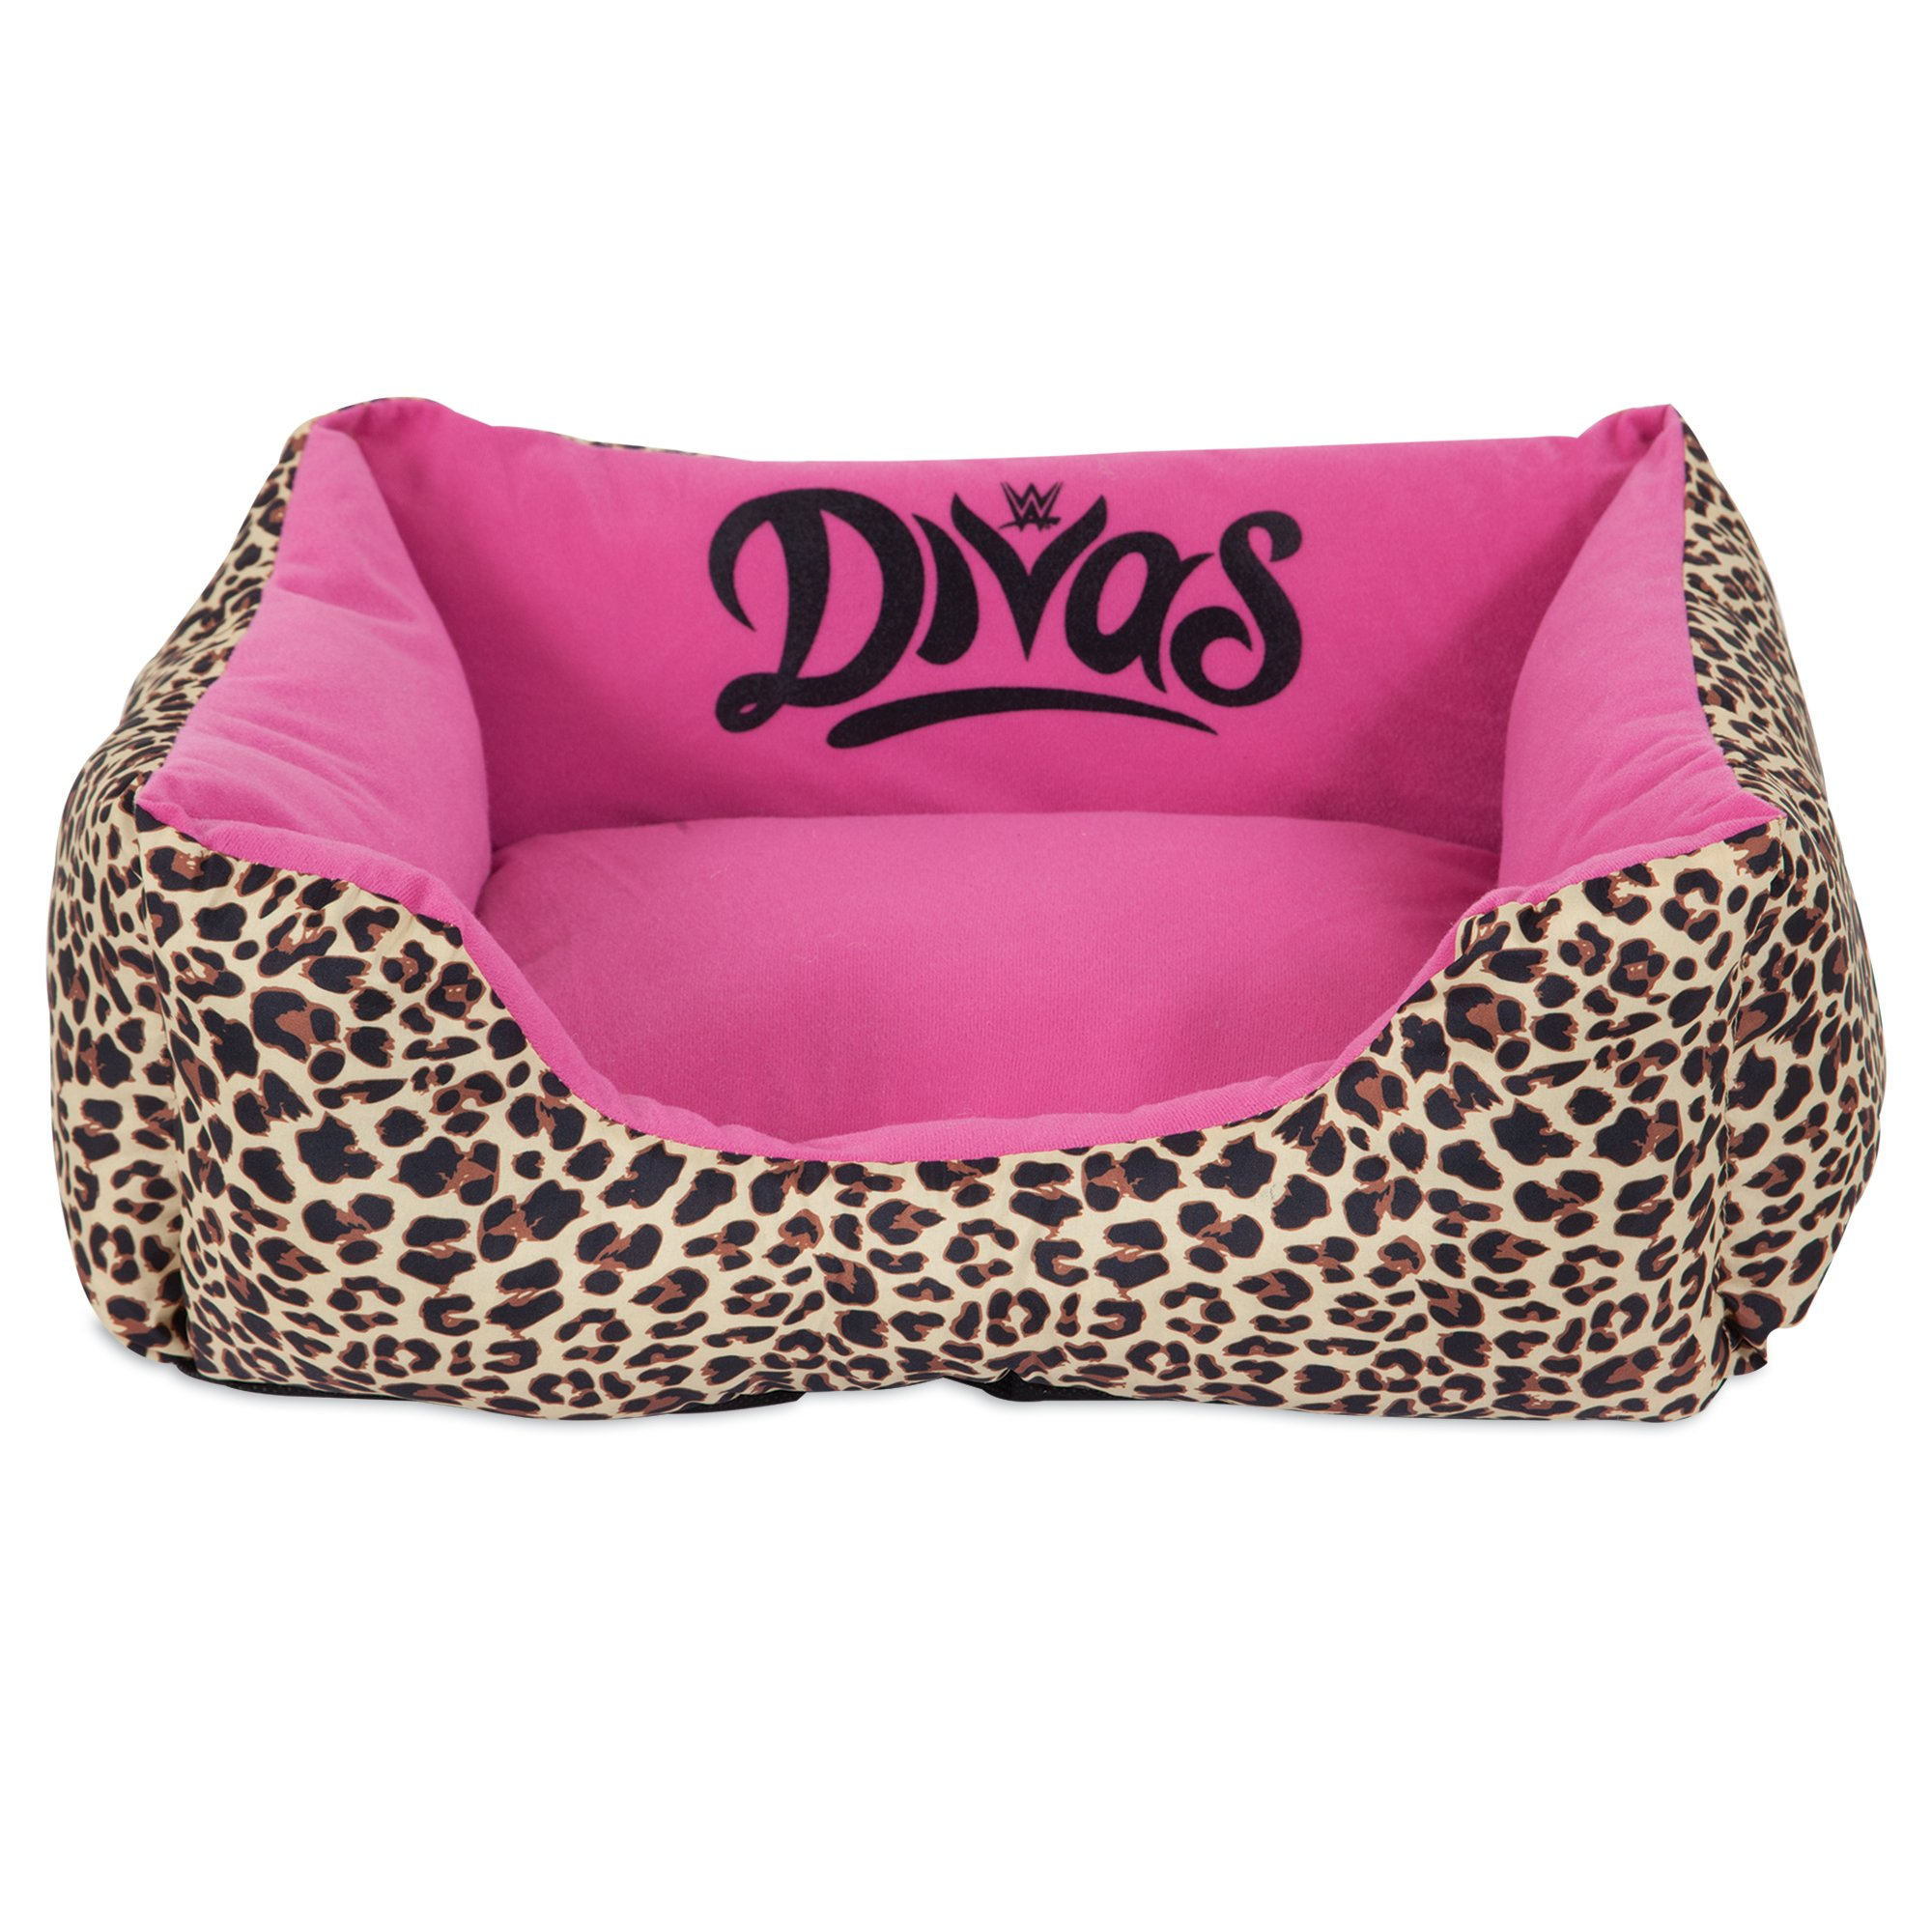 """Image of """"WWE Divas Cuddler Dog Bed in Pink, 20"""""""" L x 17"""""""" W, X-Small"""""""